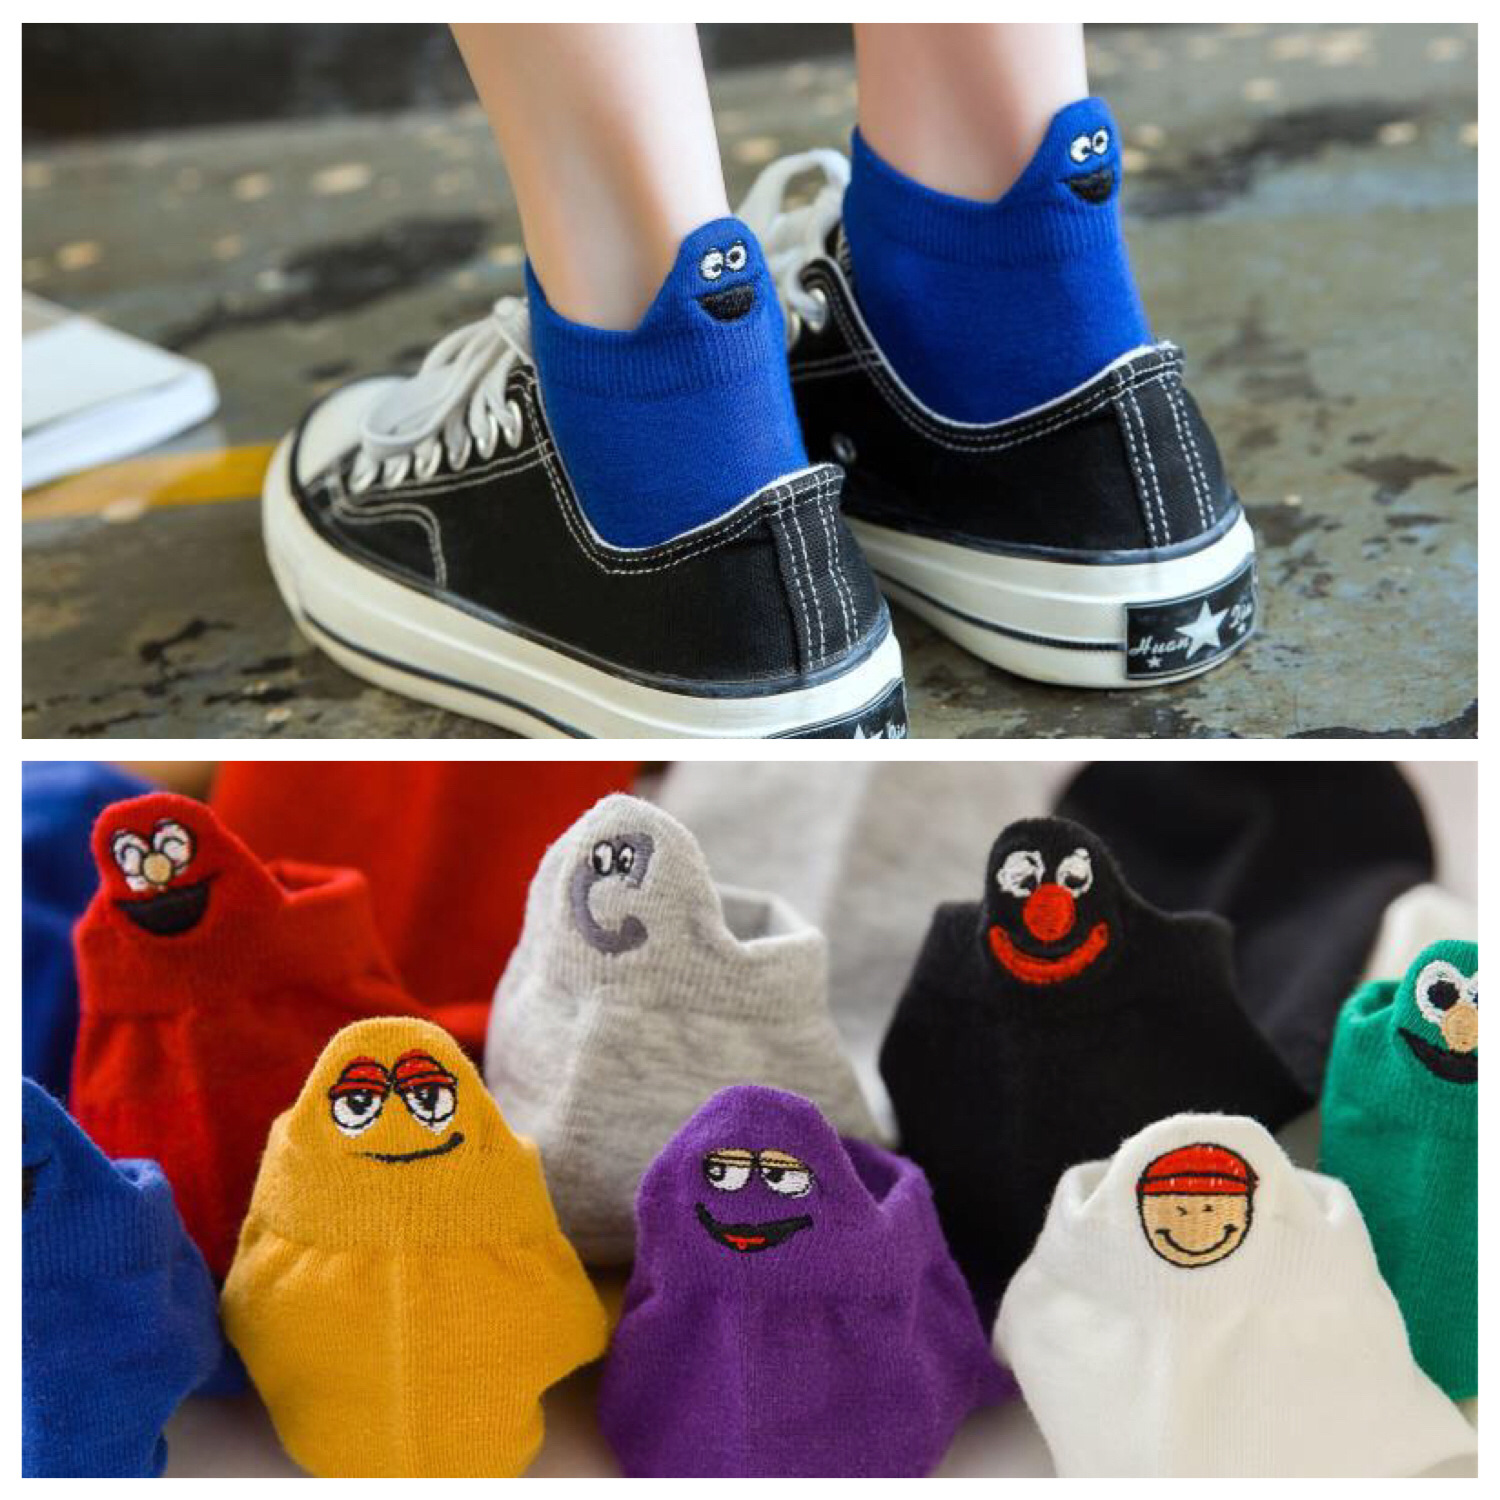 Embroidered Expression Women Socks Happy Fashion Ankle Funny Cotton Summer 1 Pair Candy Color